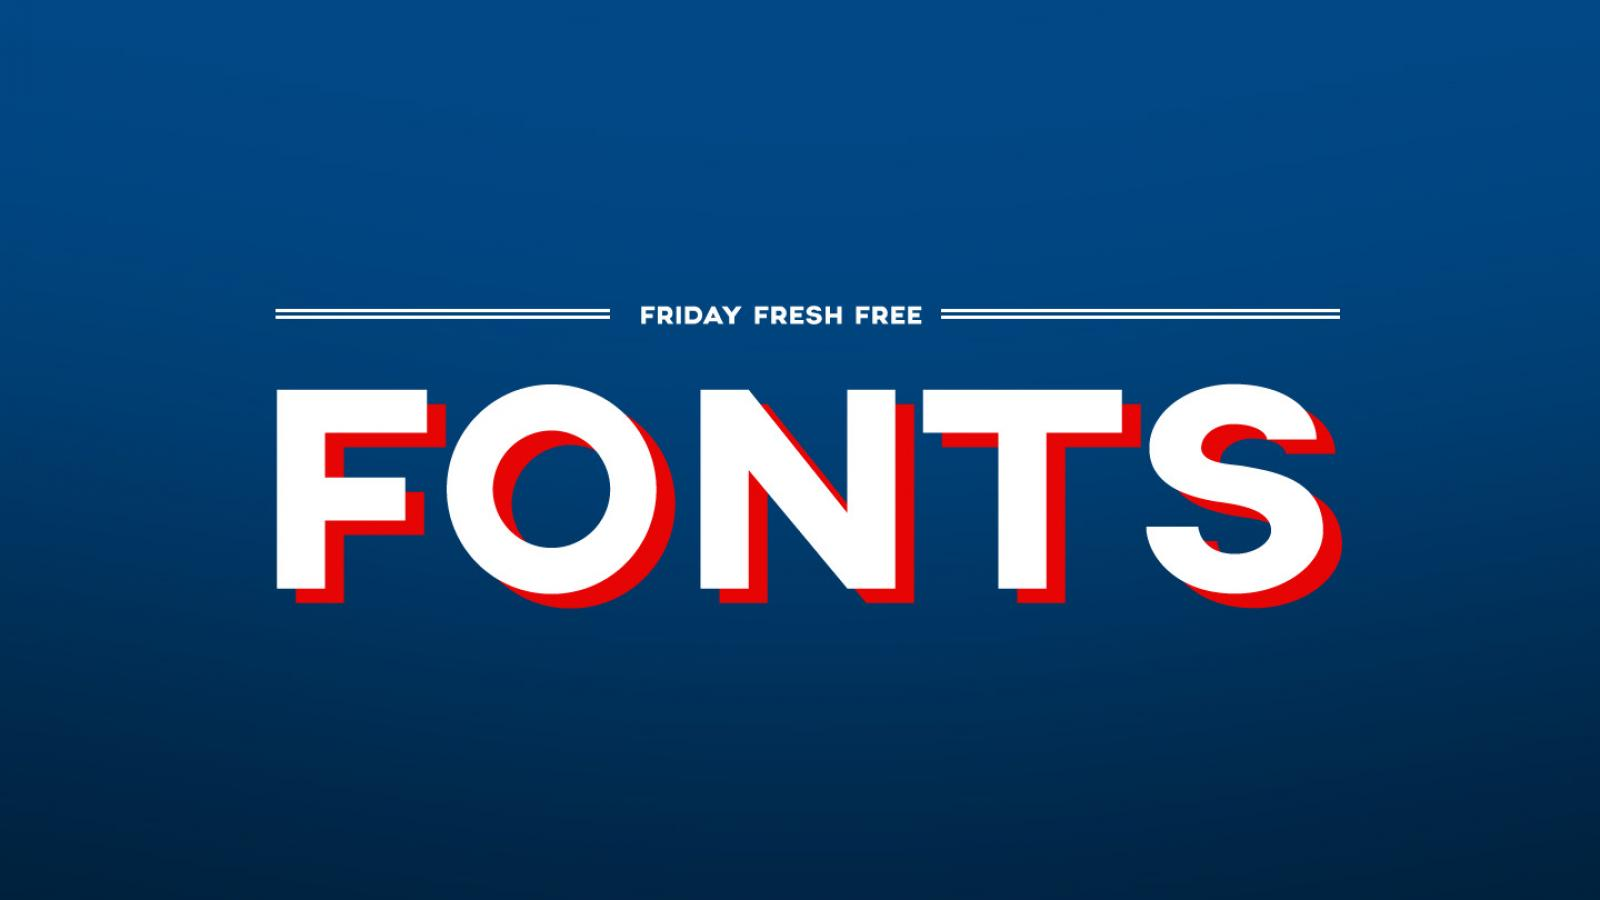 Friday Fresh Free Fonts - Round-Grotesk, Axis, Watermelon